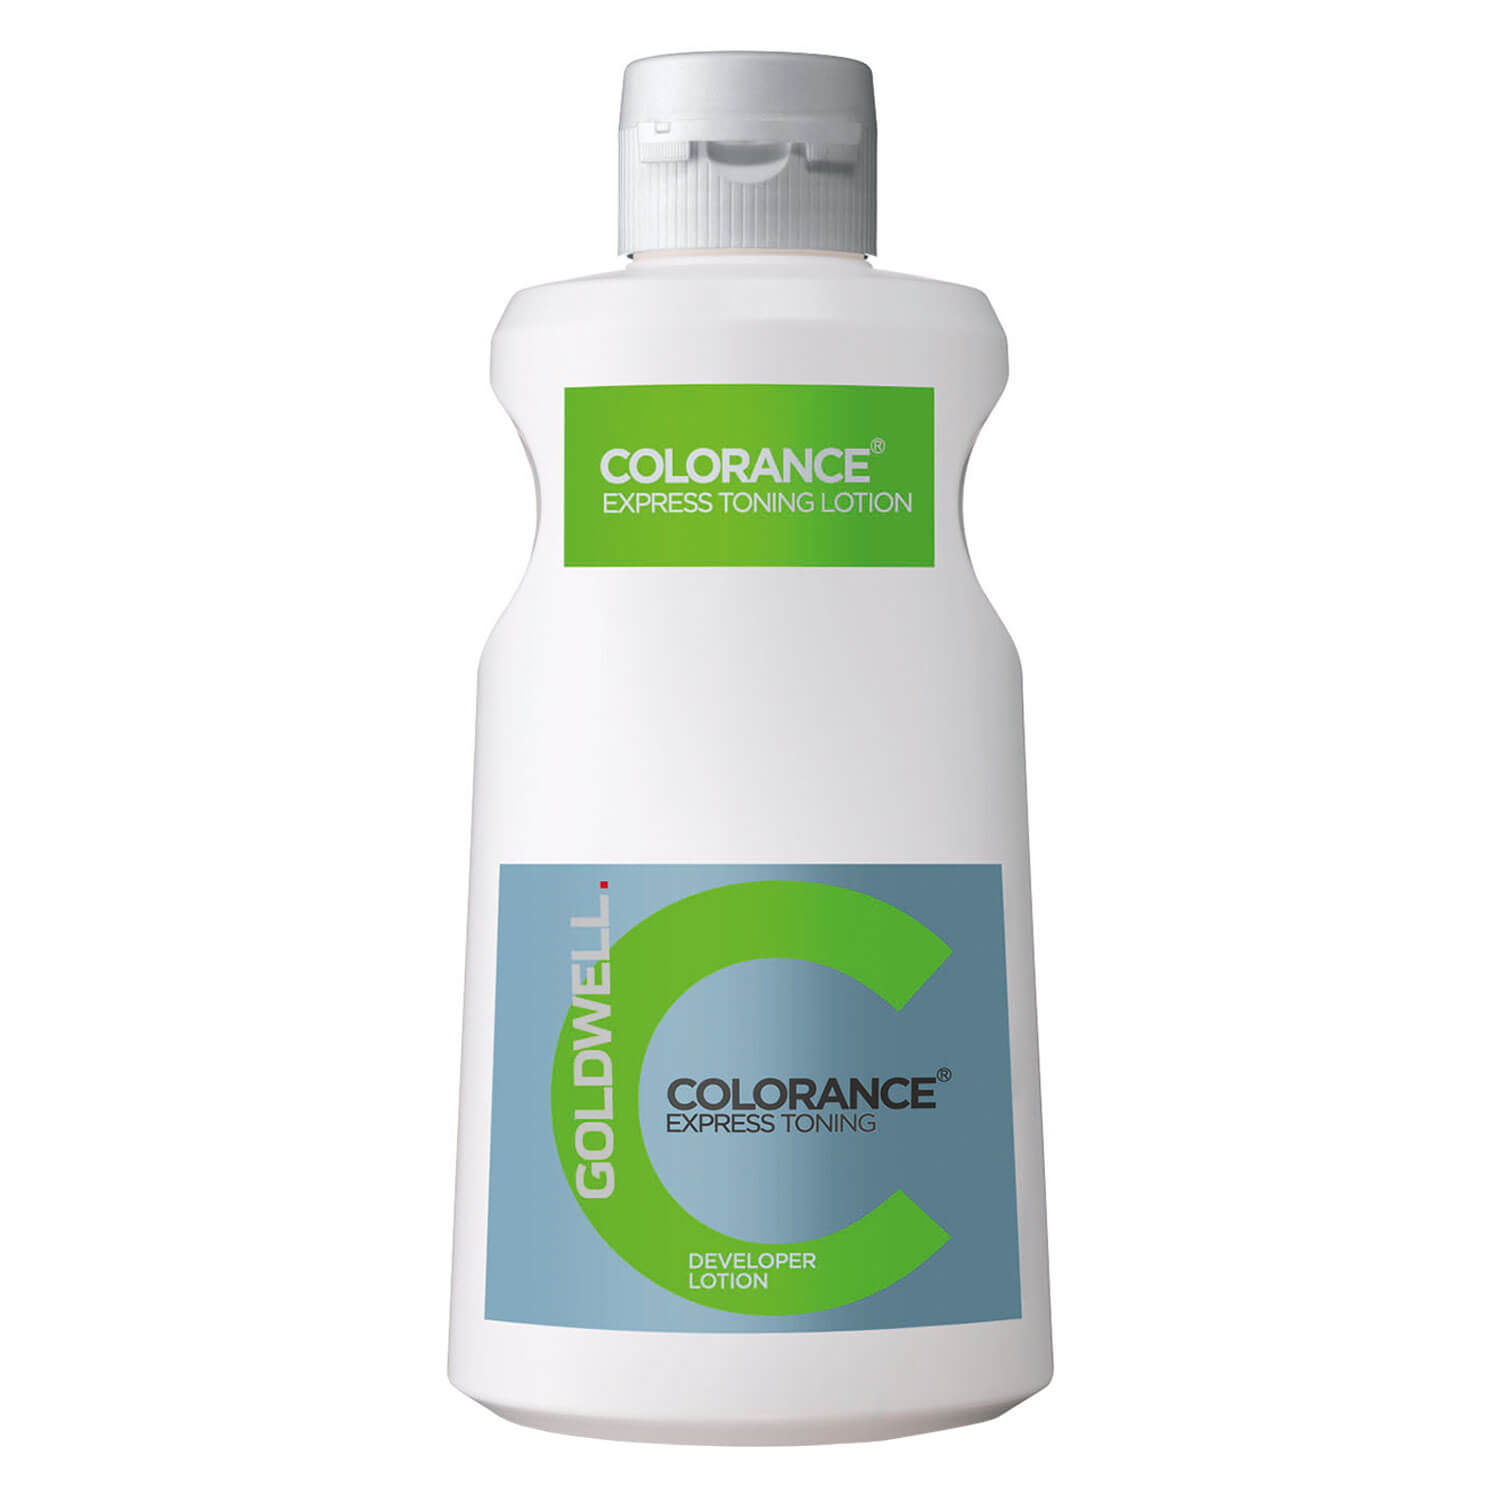 Colorance Express Toning - Lotion